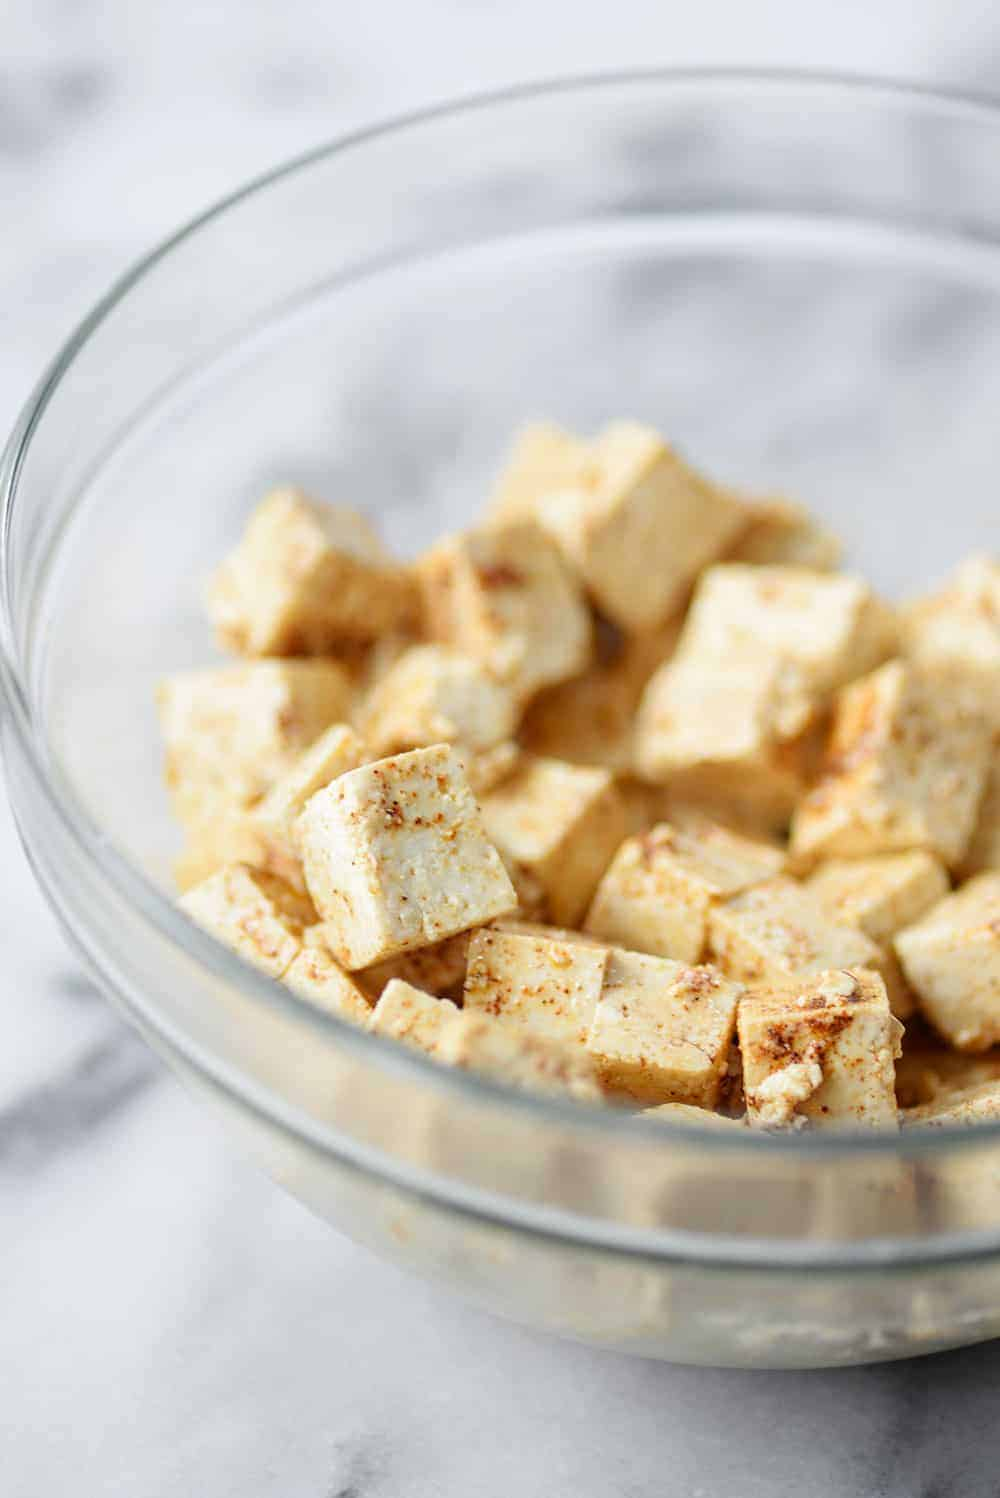 tofu tossed with seasonings in a bowl